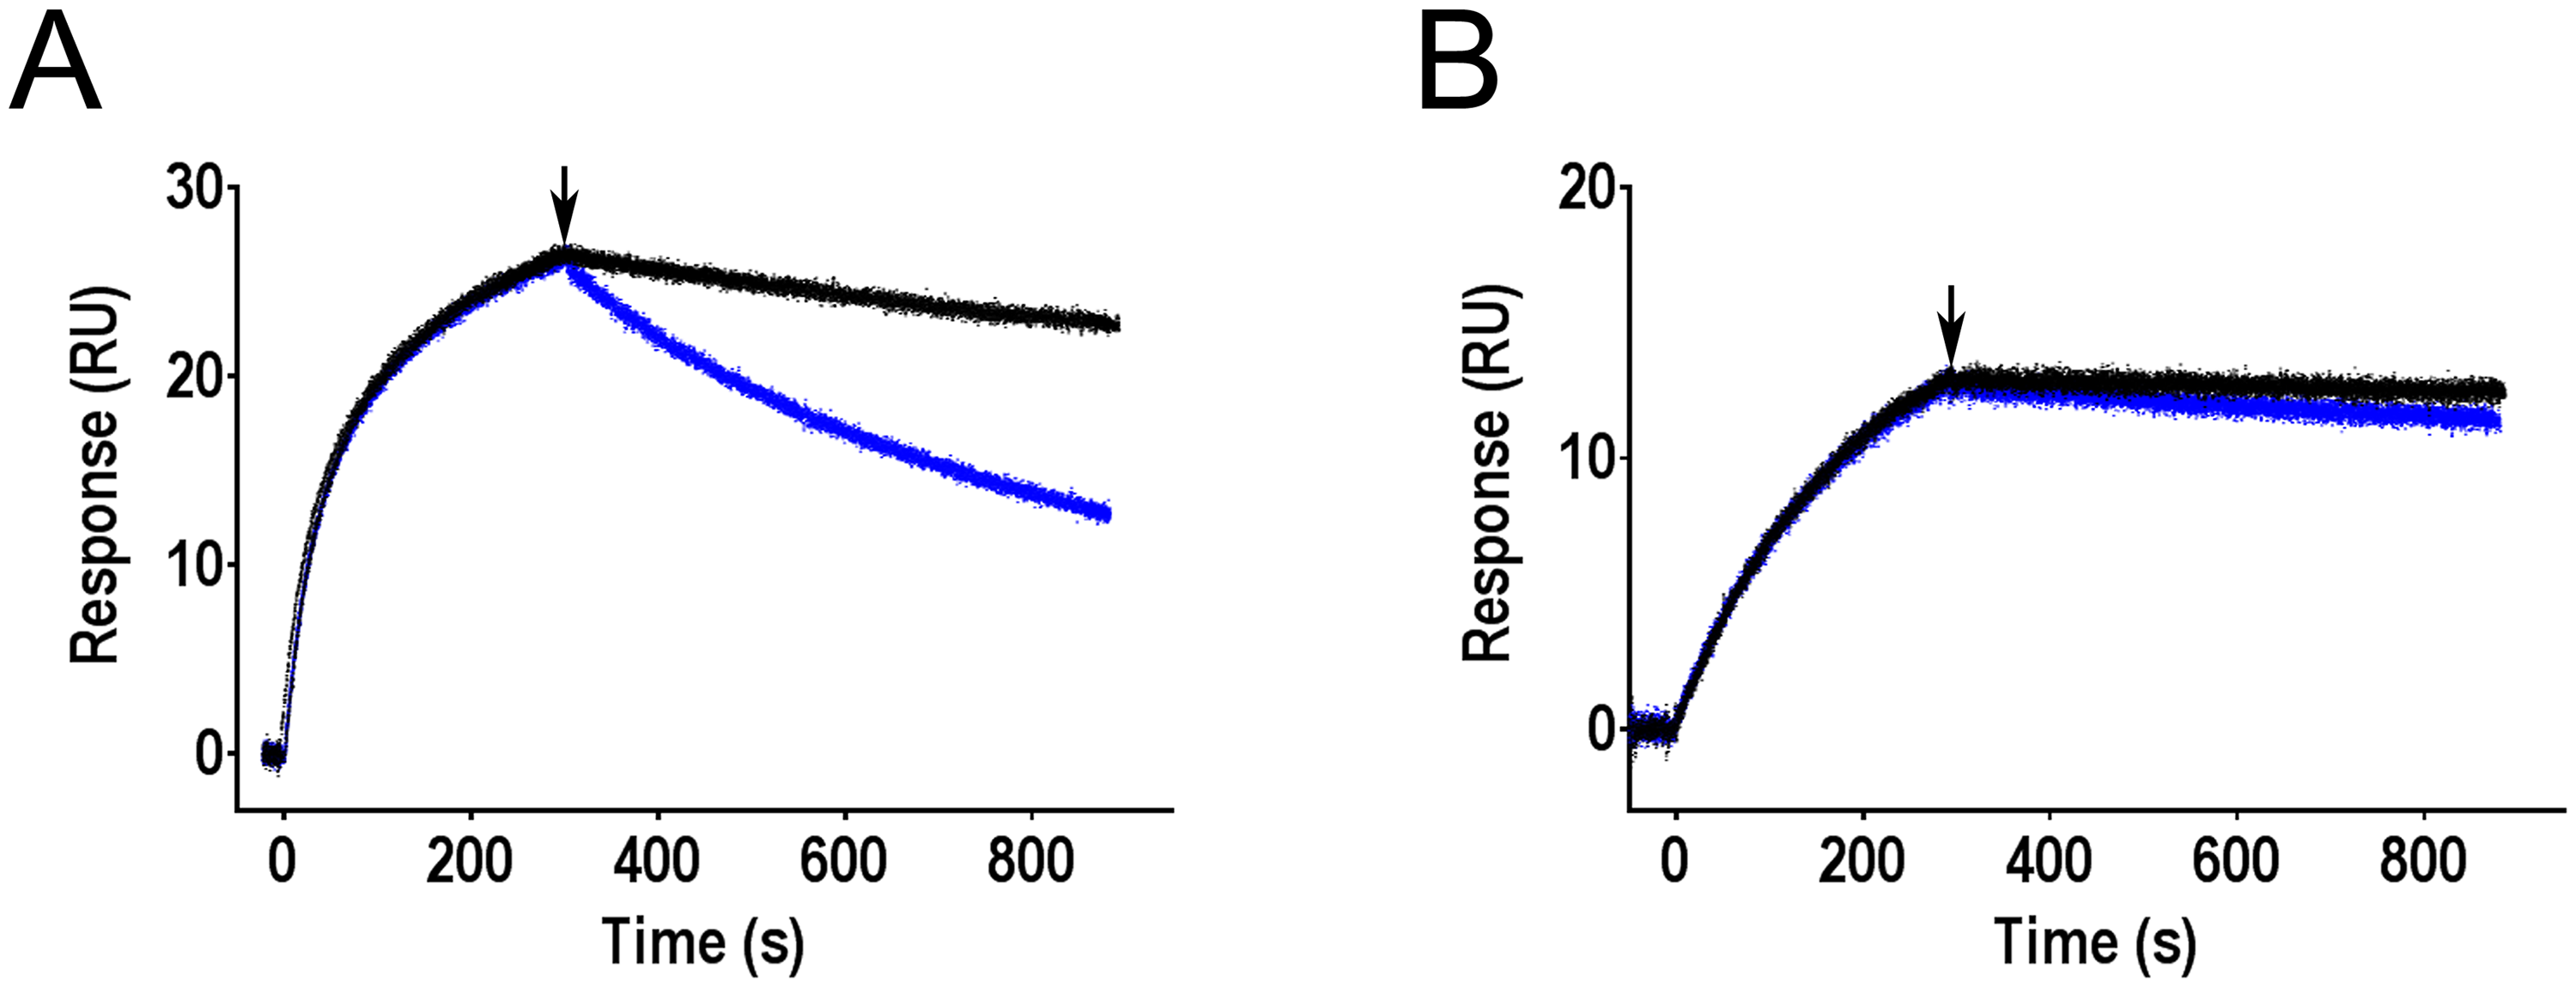 Effect of mannose on antibodies bound to FimH as determined by surface plasmon resonance.